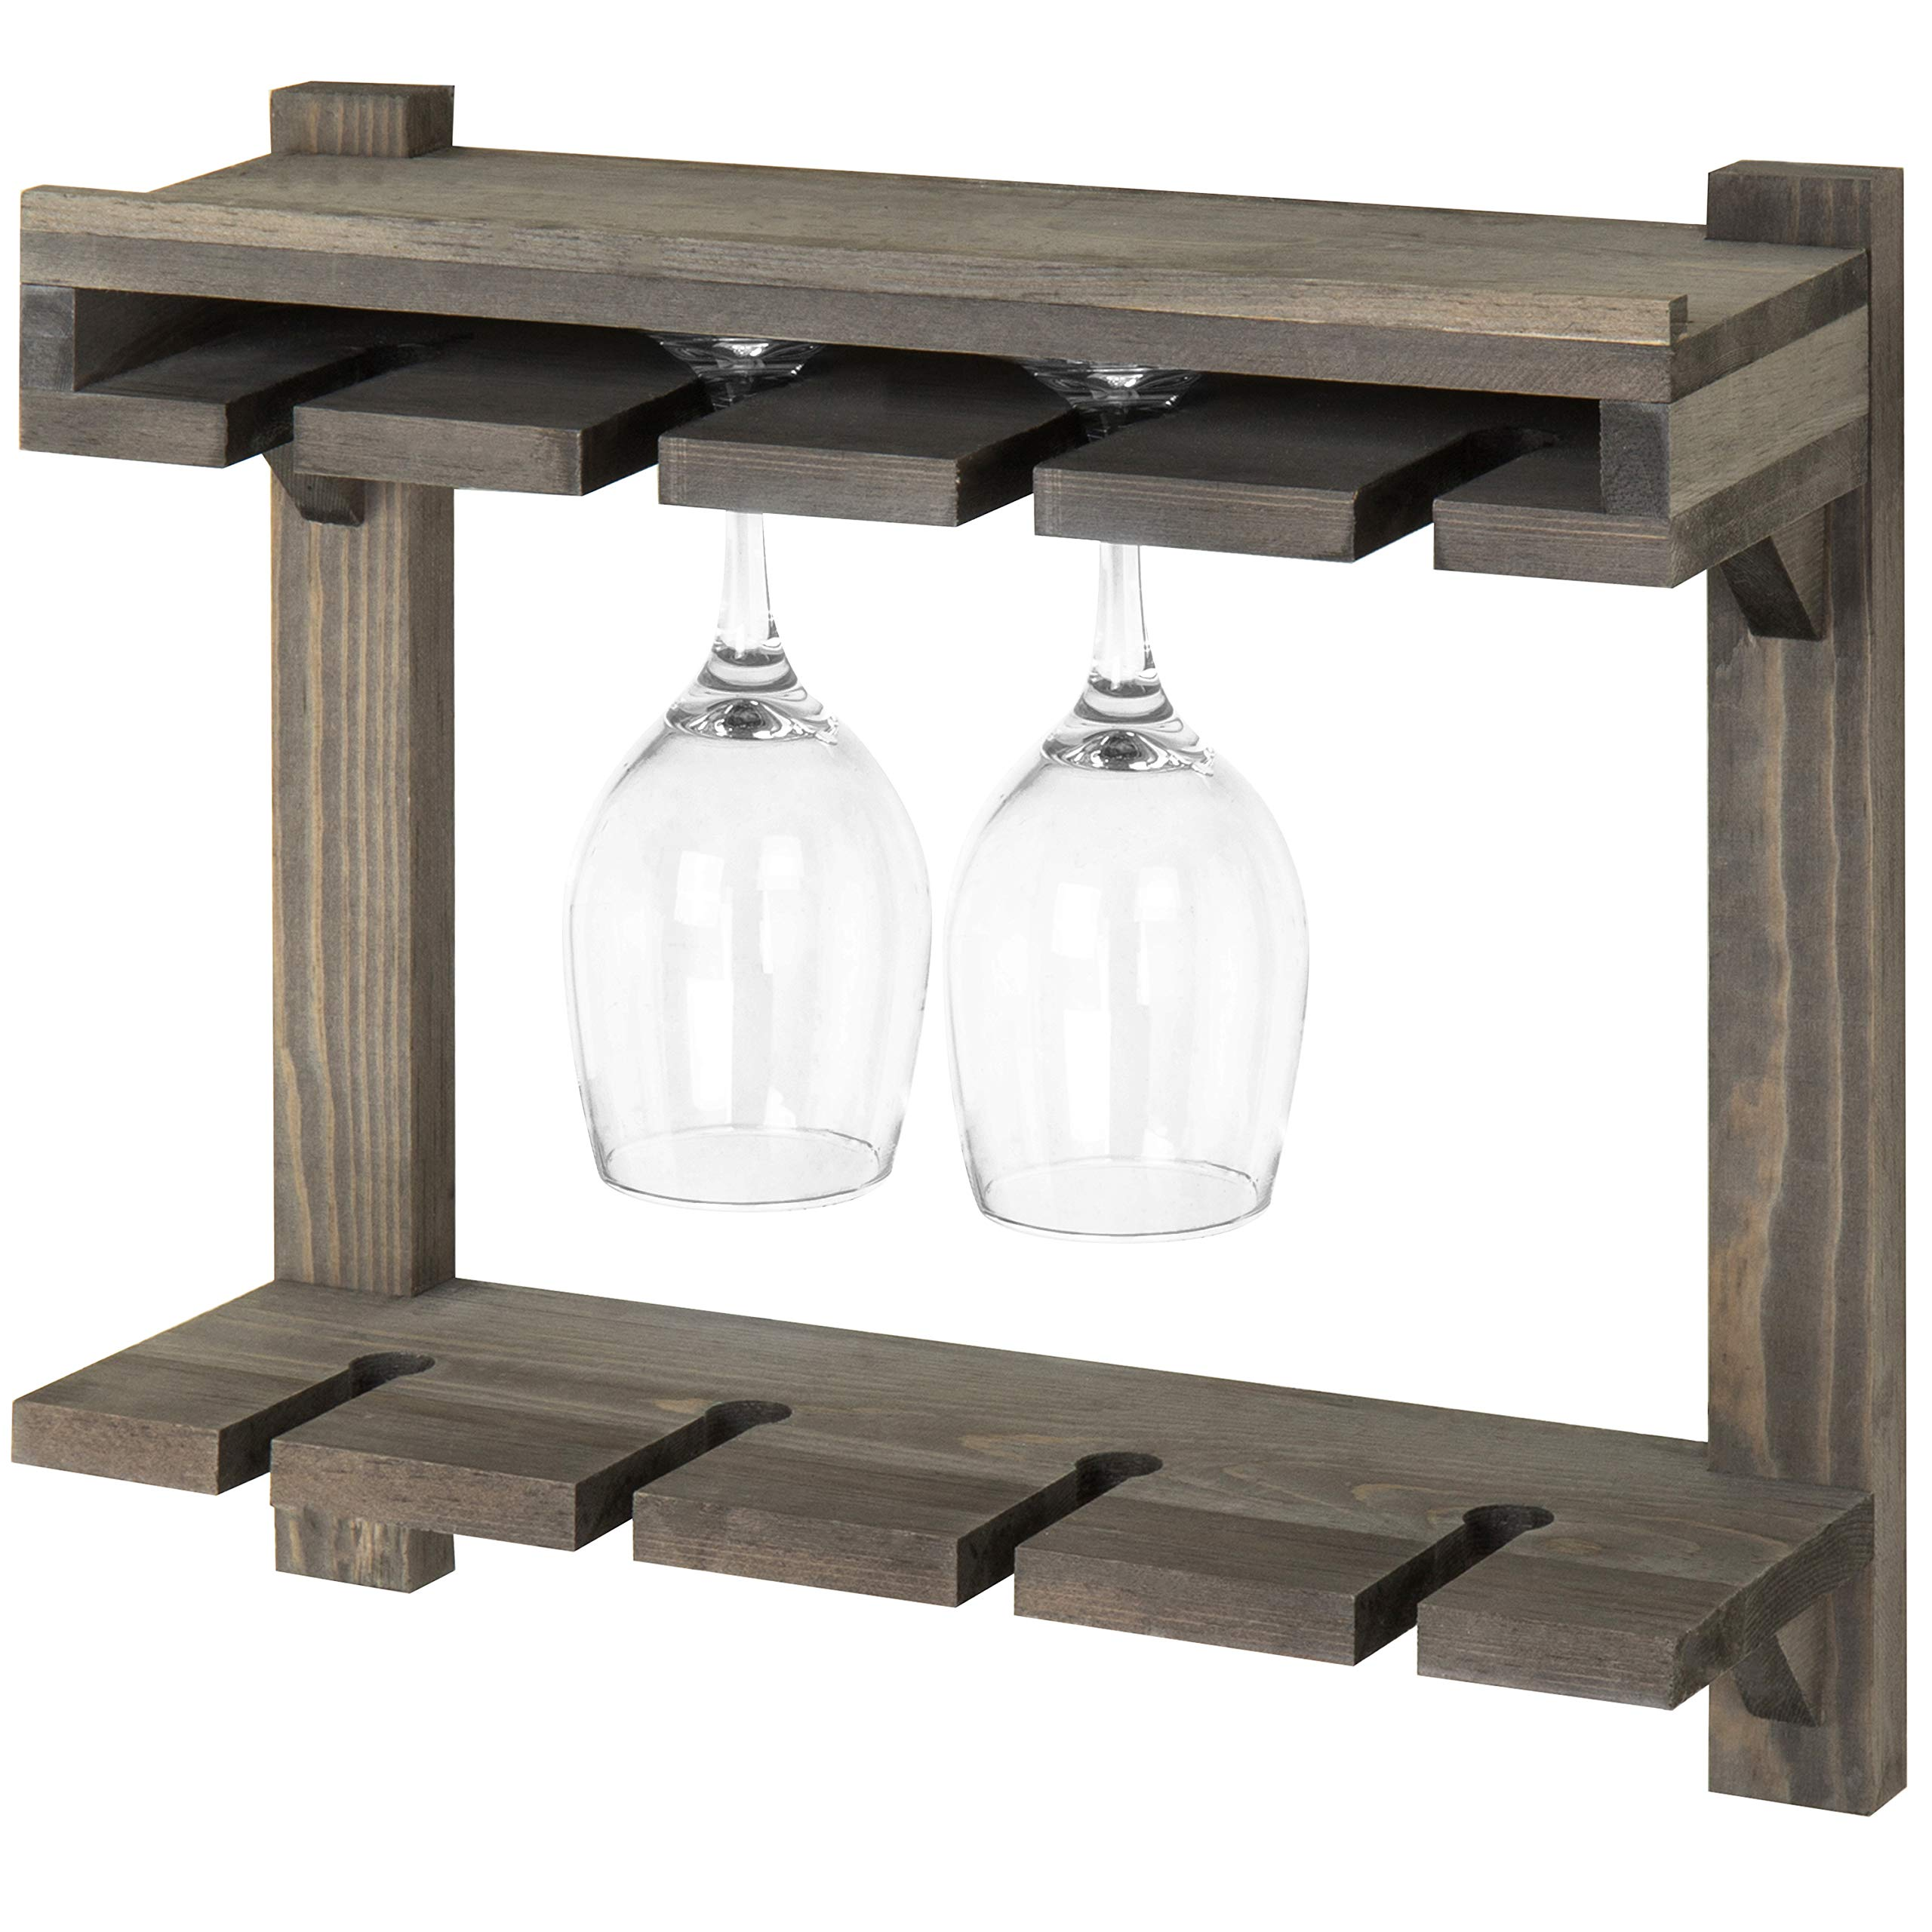 MyGift Wall-Mounted Gray Wood 2-Tier Wine Glass Storage Rack by MyGift